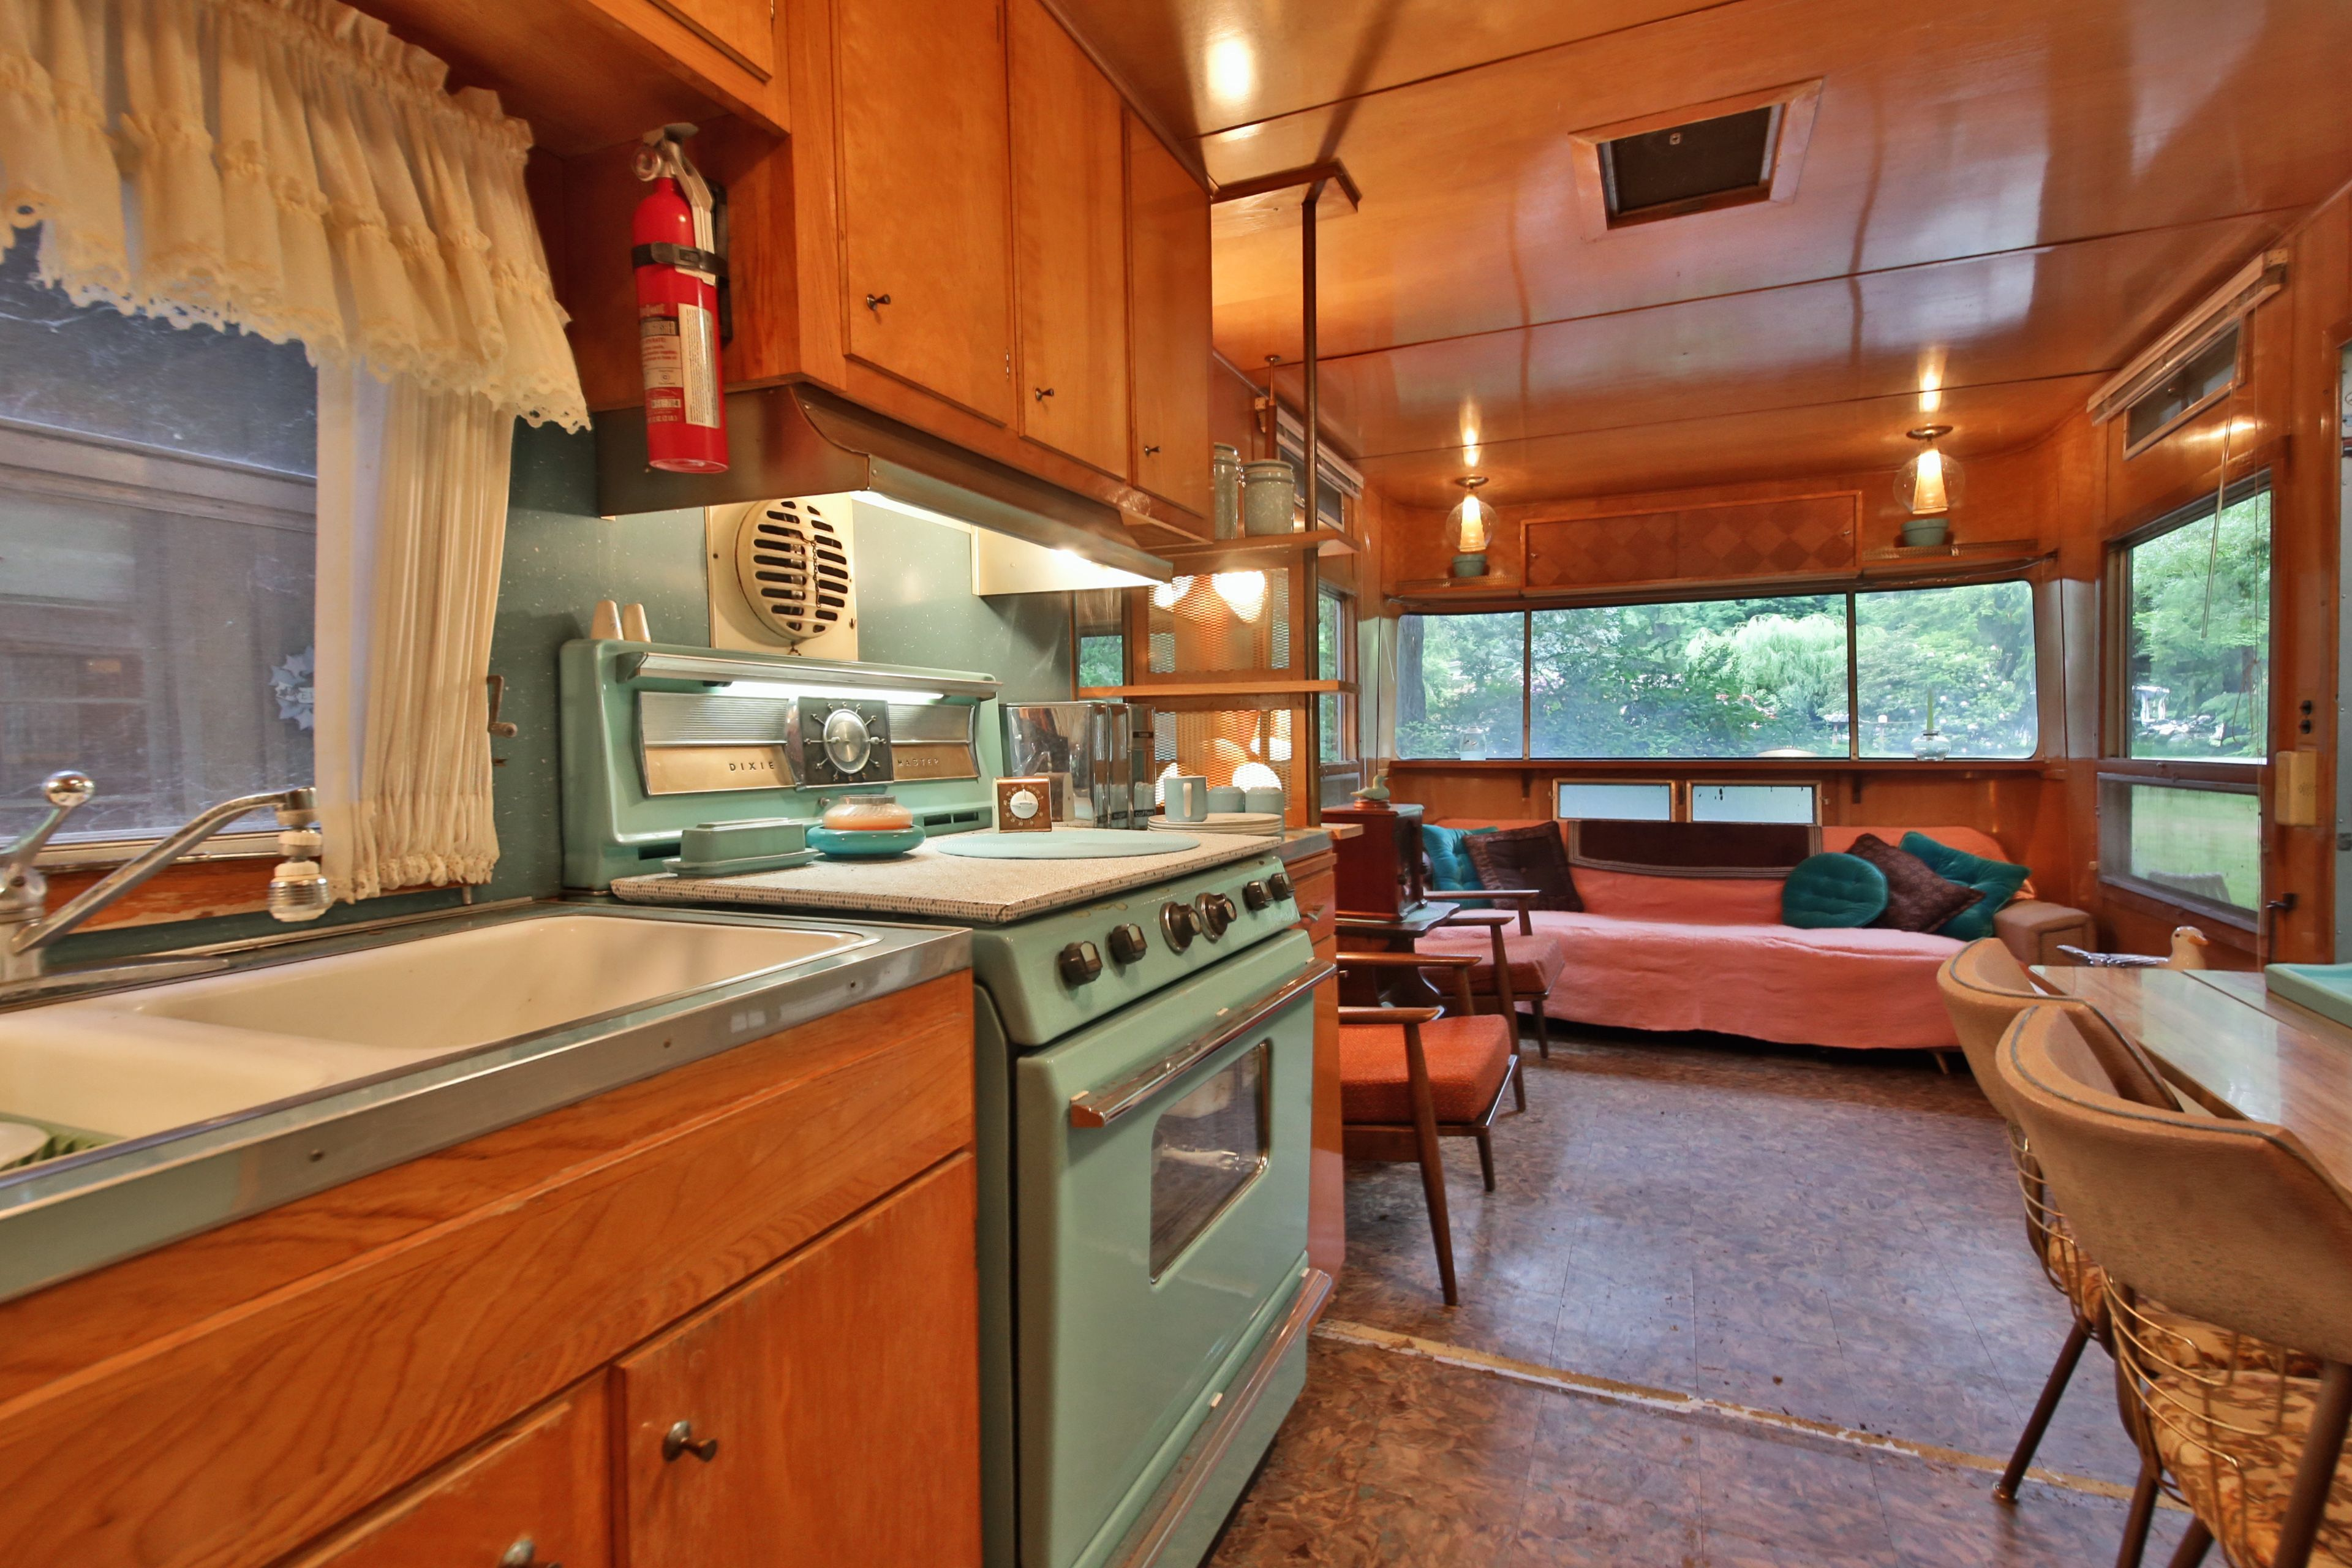 A Little Cabin And Trailer In The Whidbey Island Woods